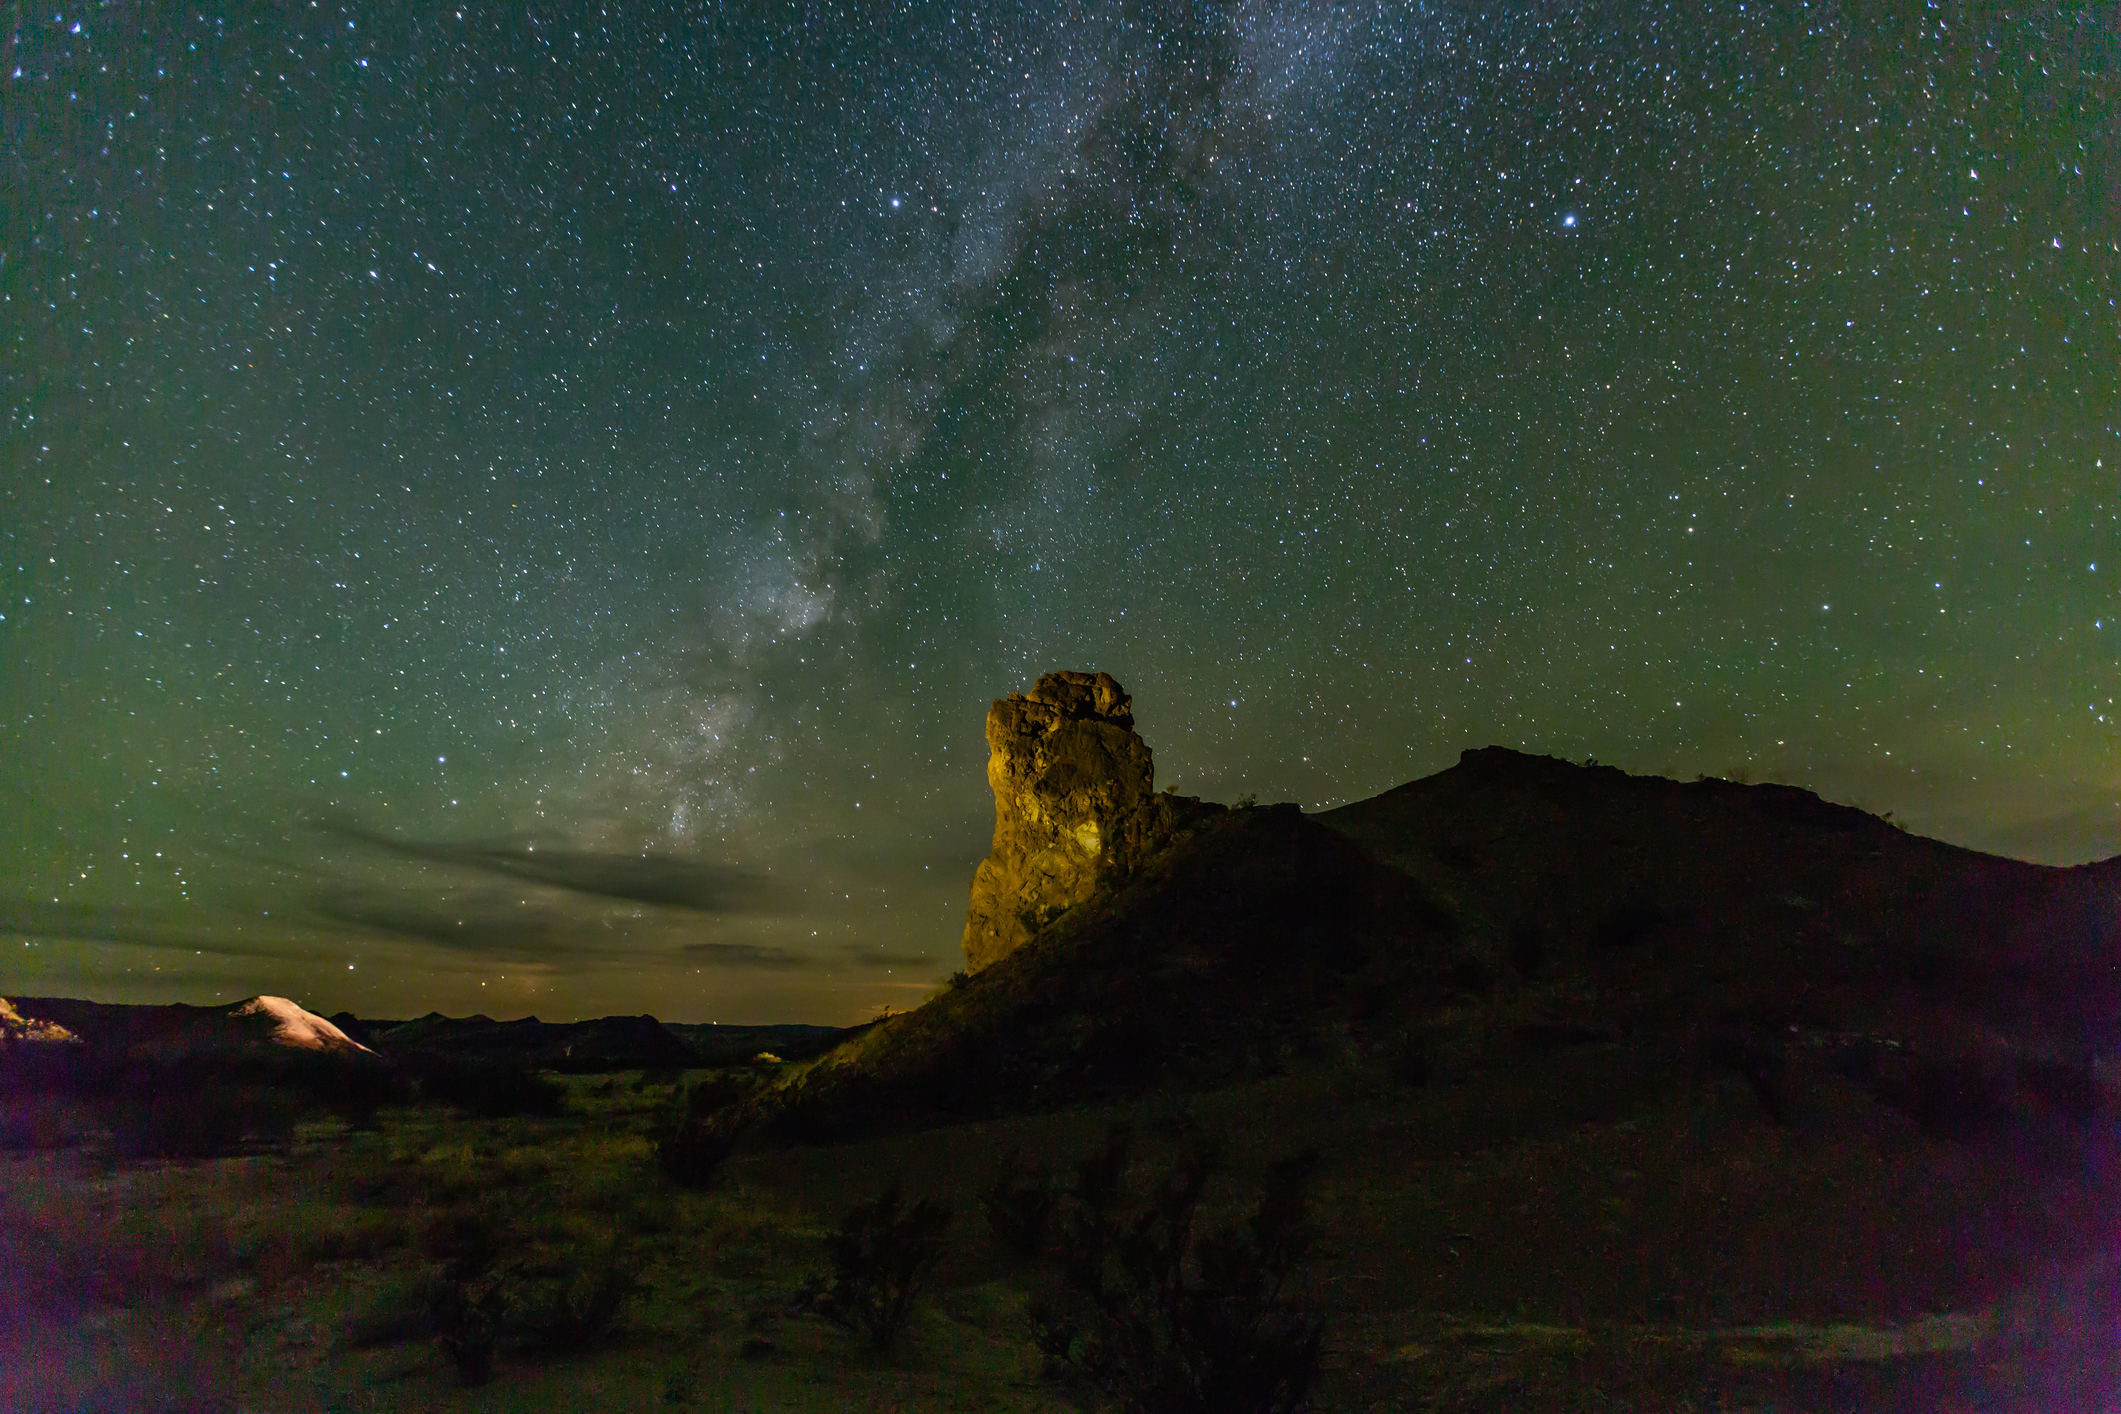 Milky Way rises over a rugged rock formation